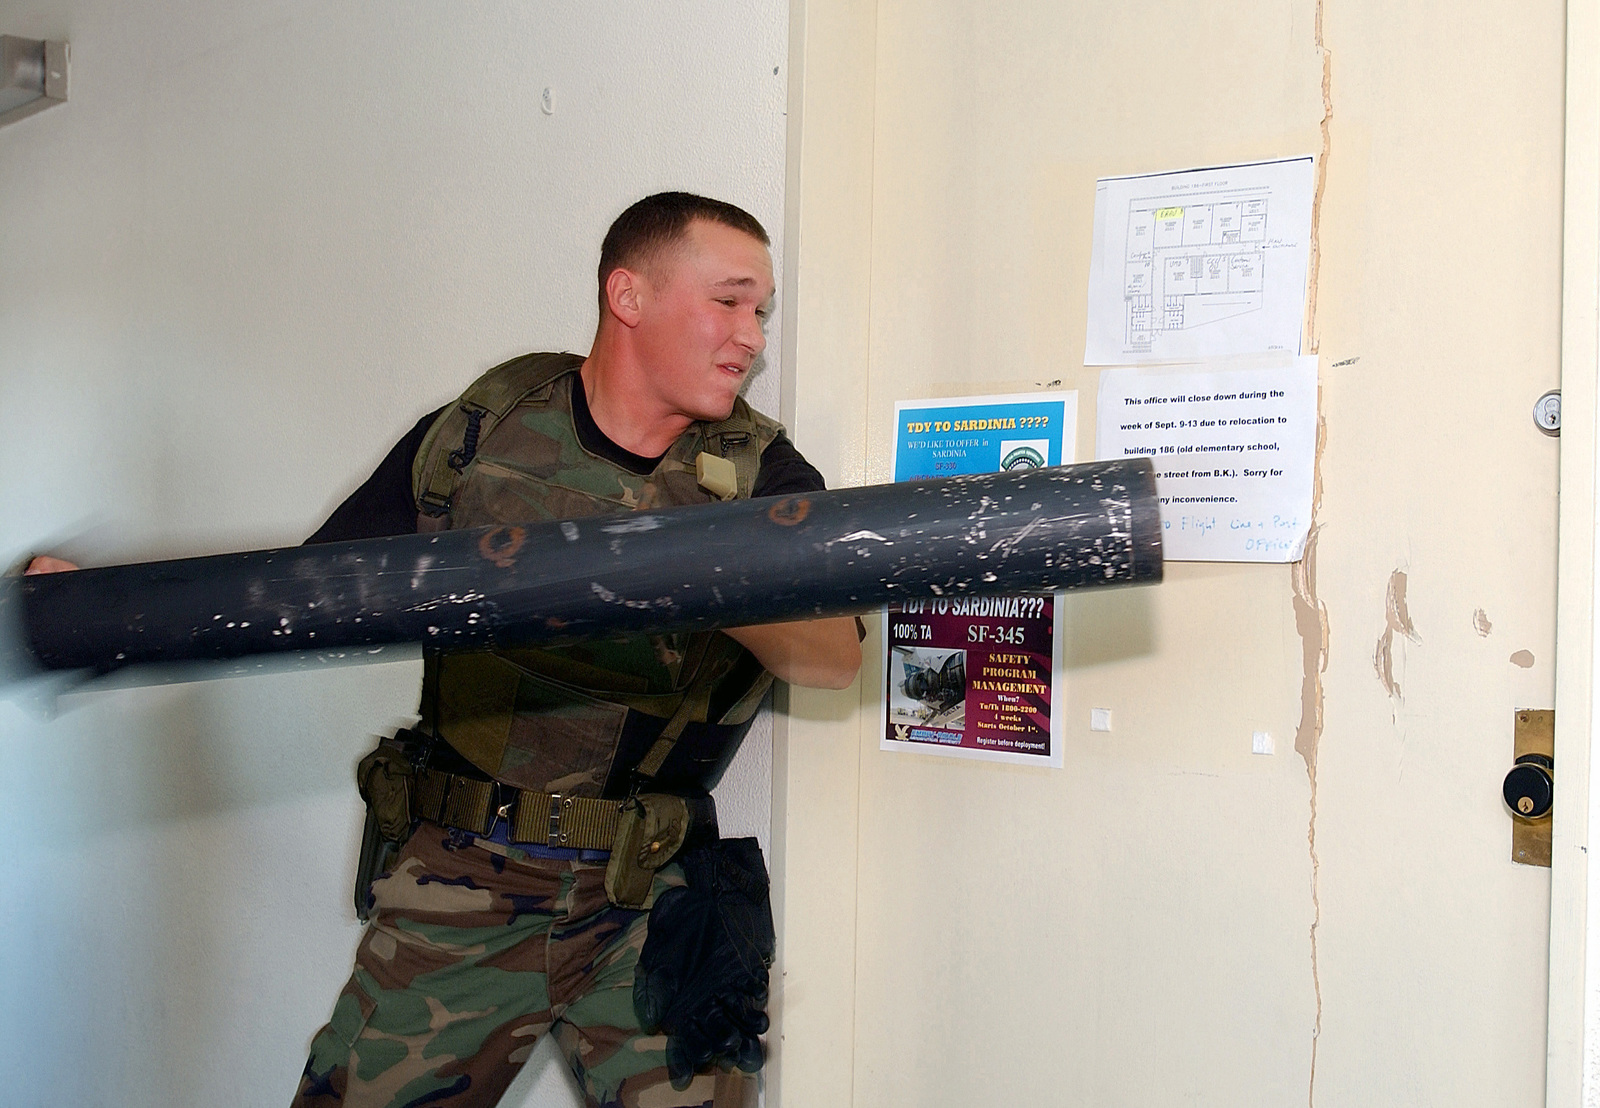 US Air Force (USAF) AIRMAN (AMN) Jarrod Getz, with the 31st Security Forces Squadron (SFS), at Aviano Air Base (AB), Italy, rams a door open during his realistic breach training